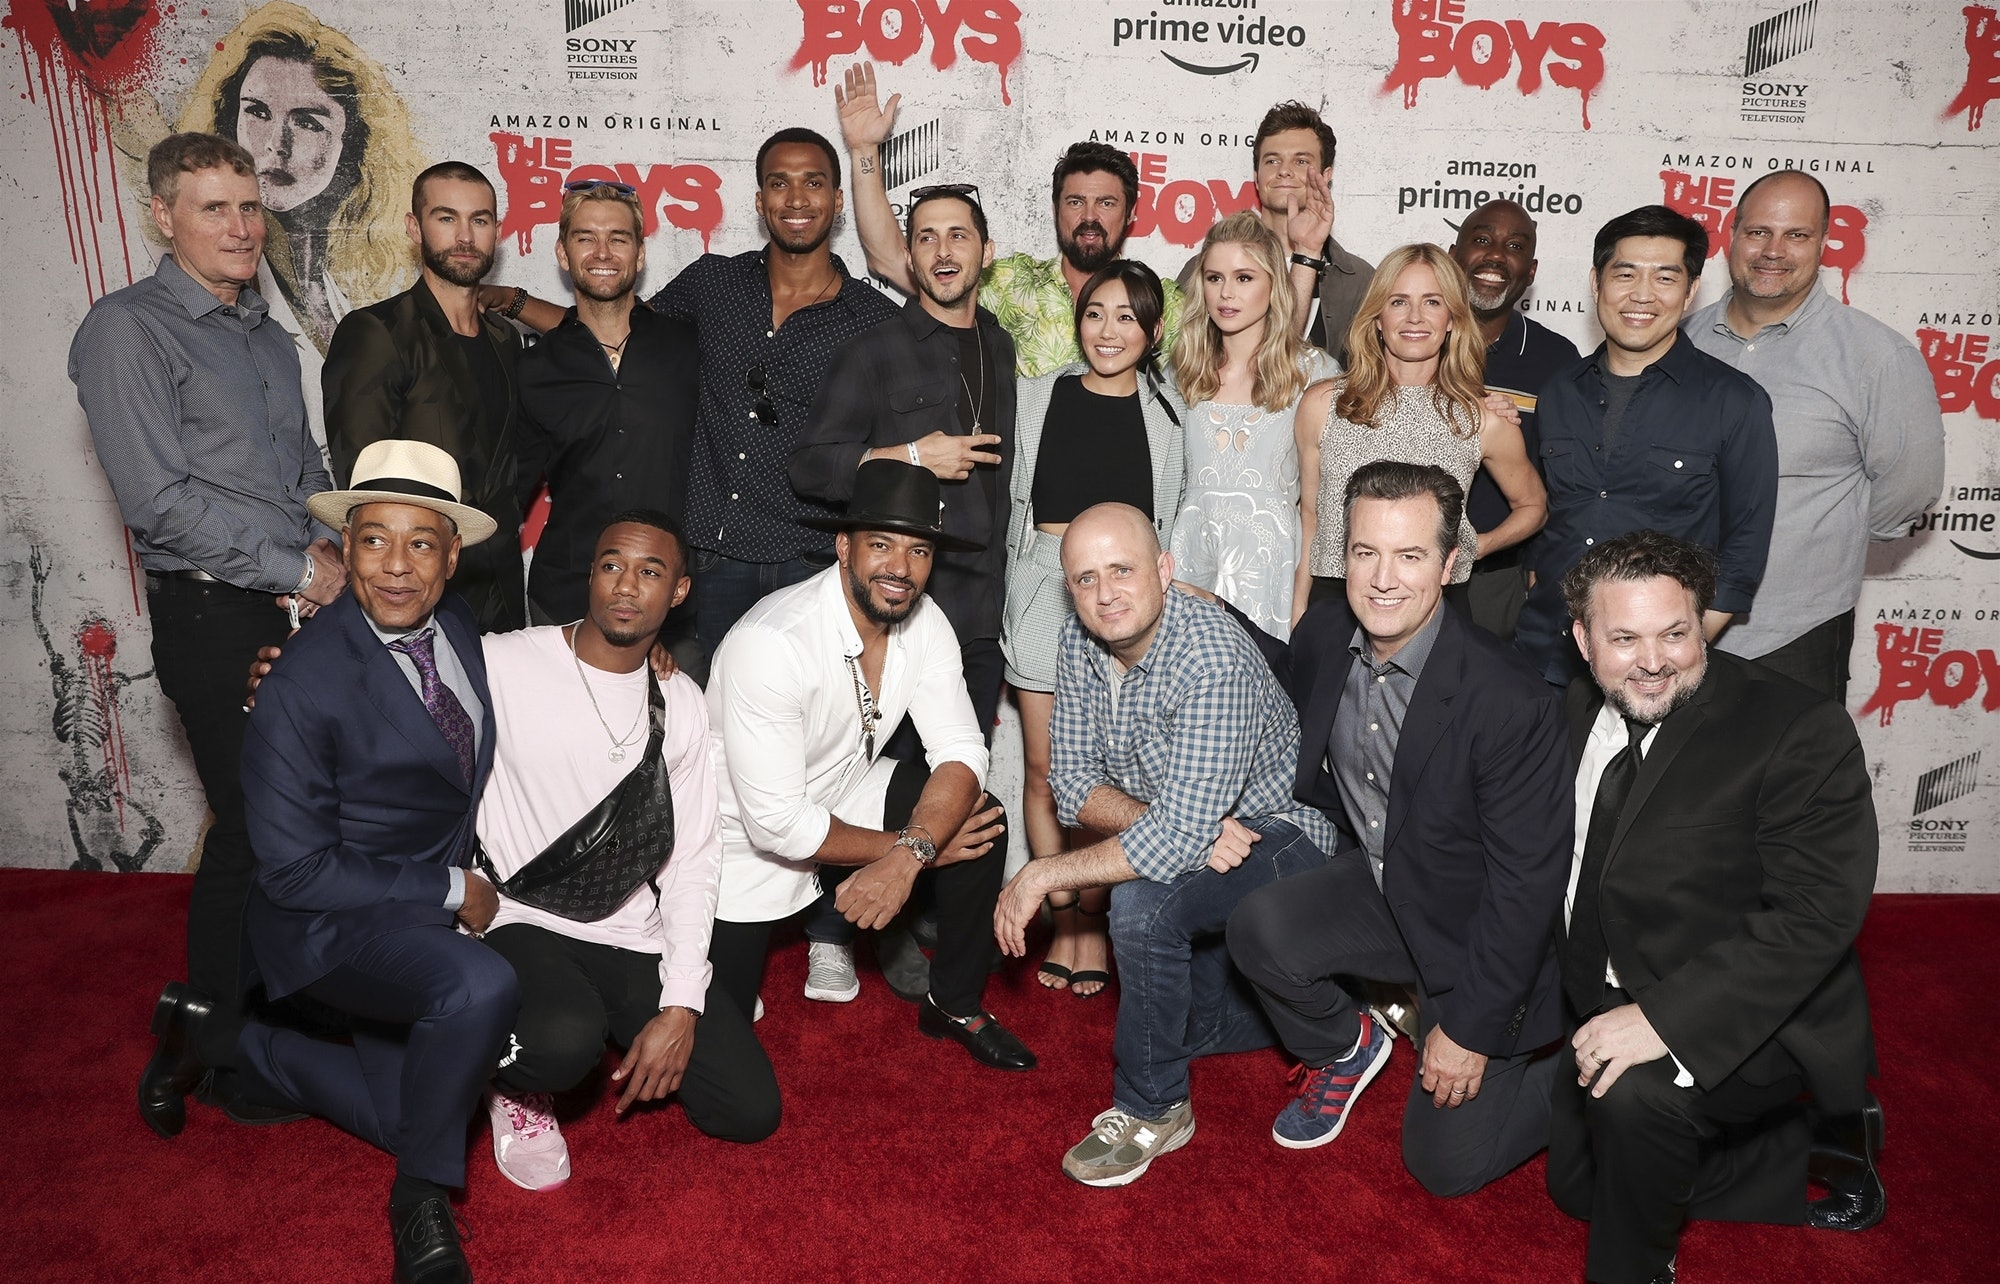 The cast and crew of 'The Boys' at Comic-Con.